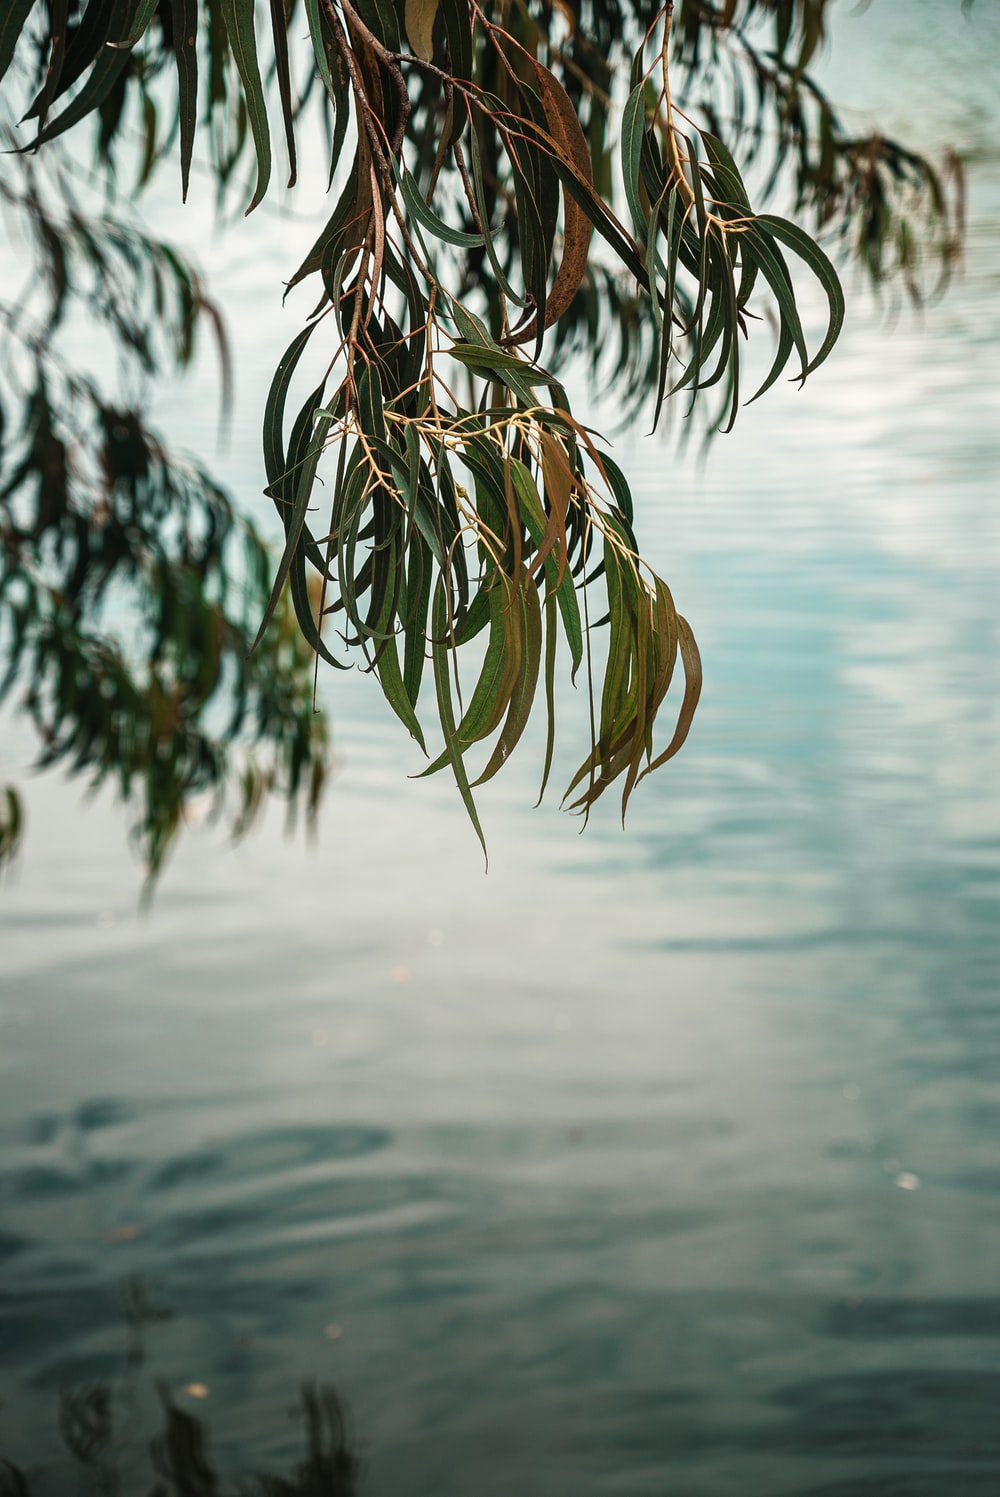 selective focus photo of green-leafed tree